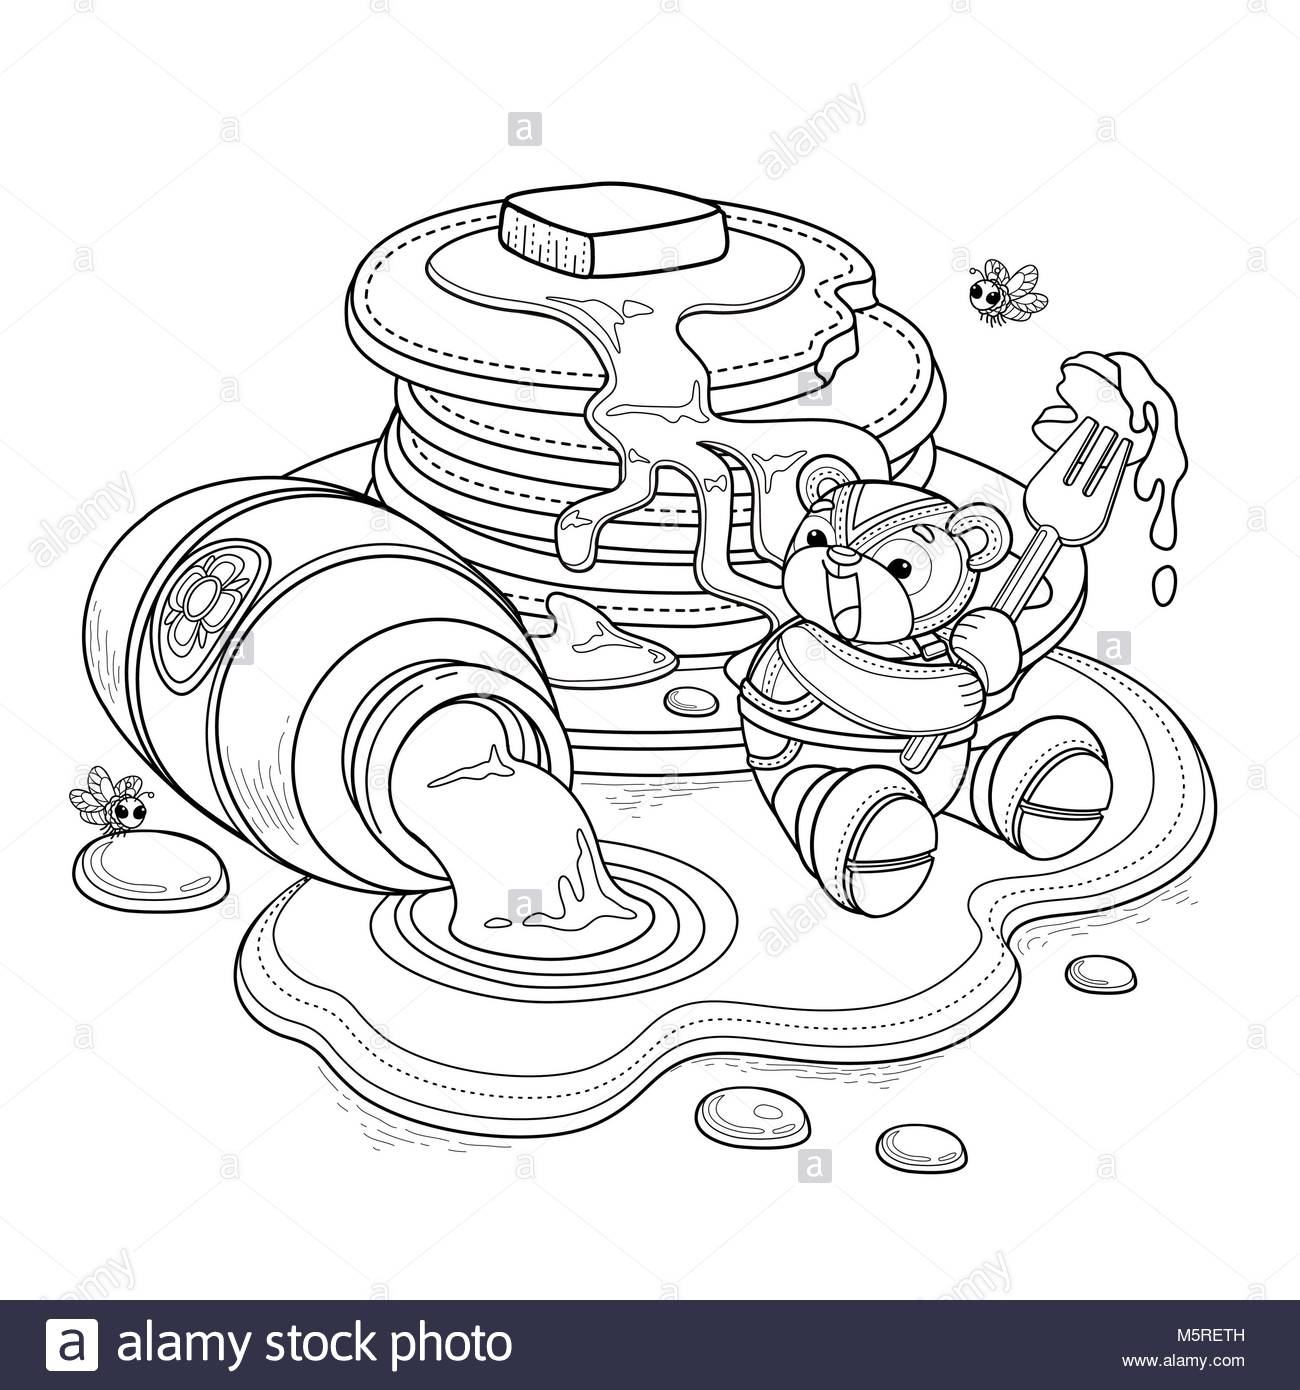 Drill Coloring Page Stockfotos & Drill Coloring Page Bilder - Alamy